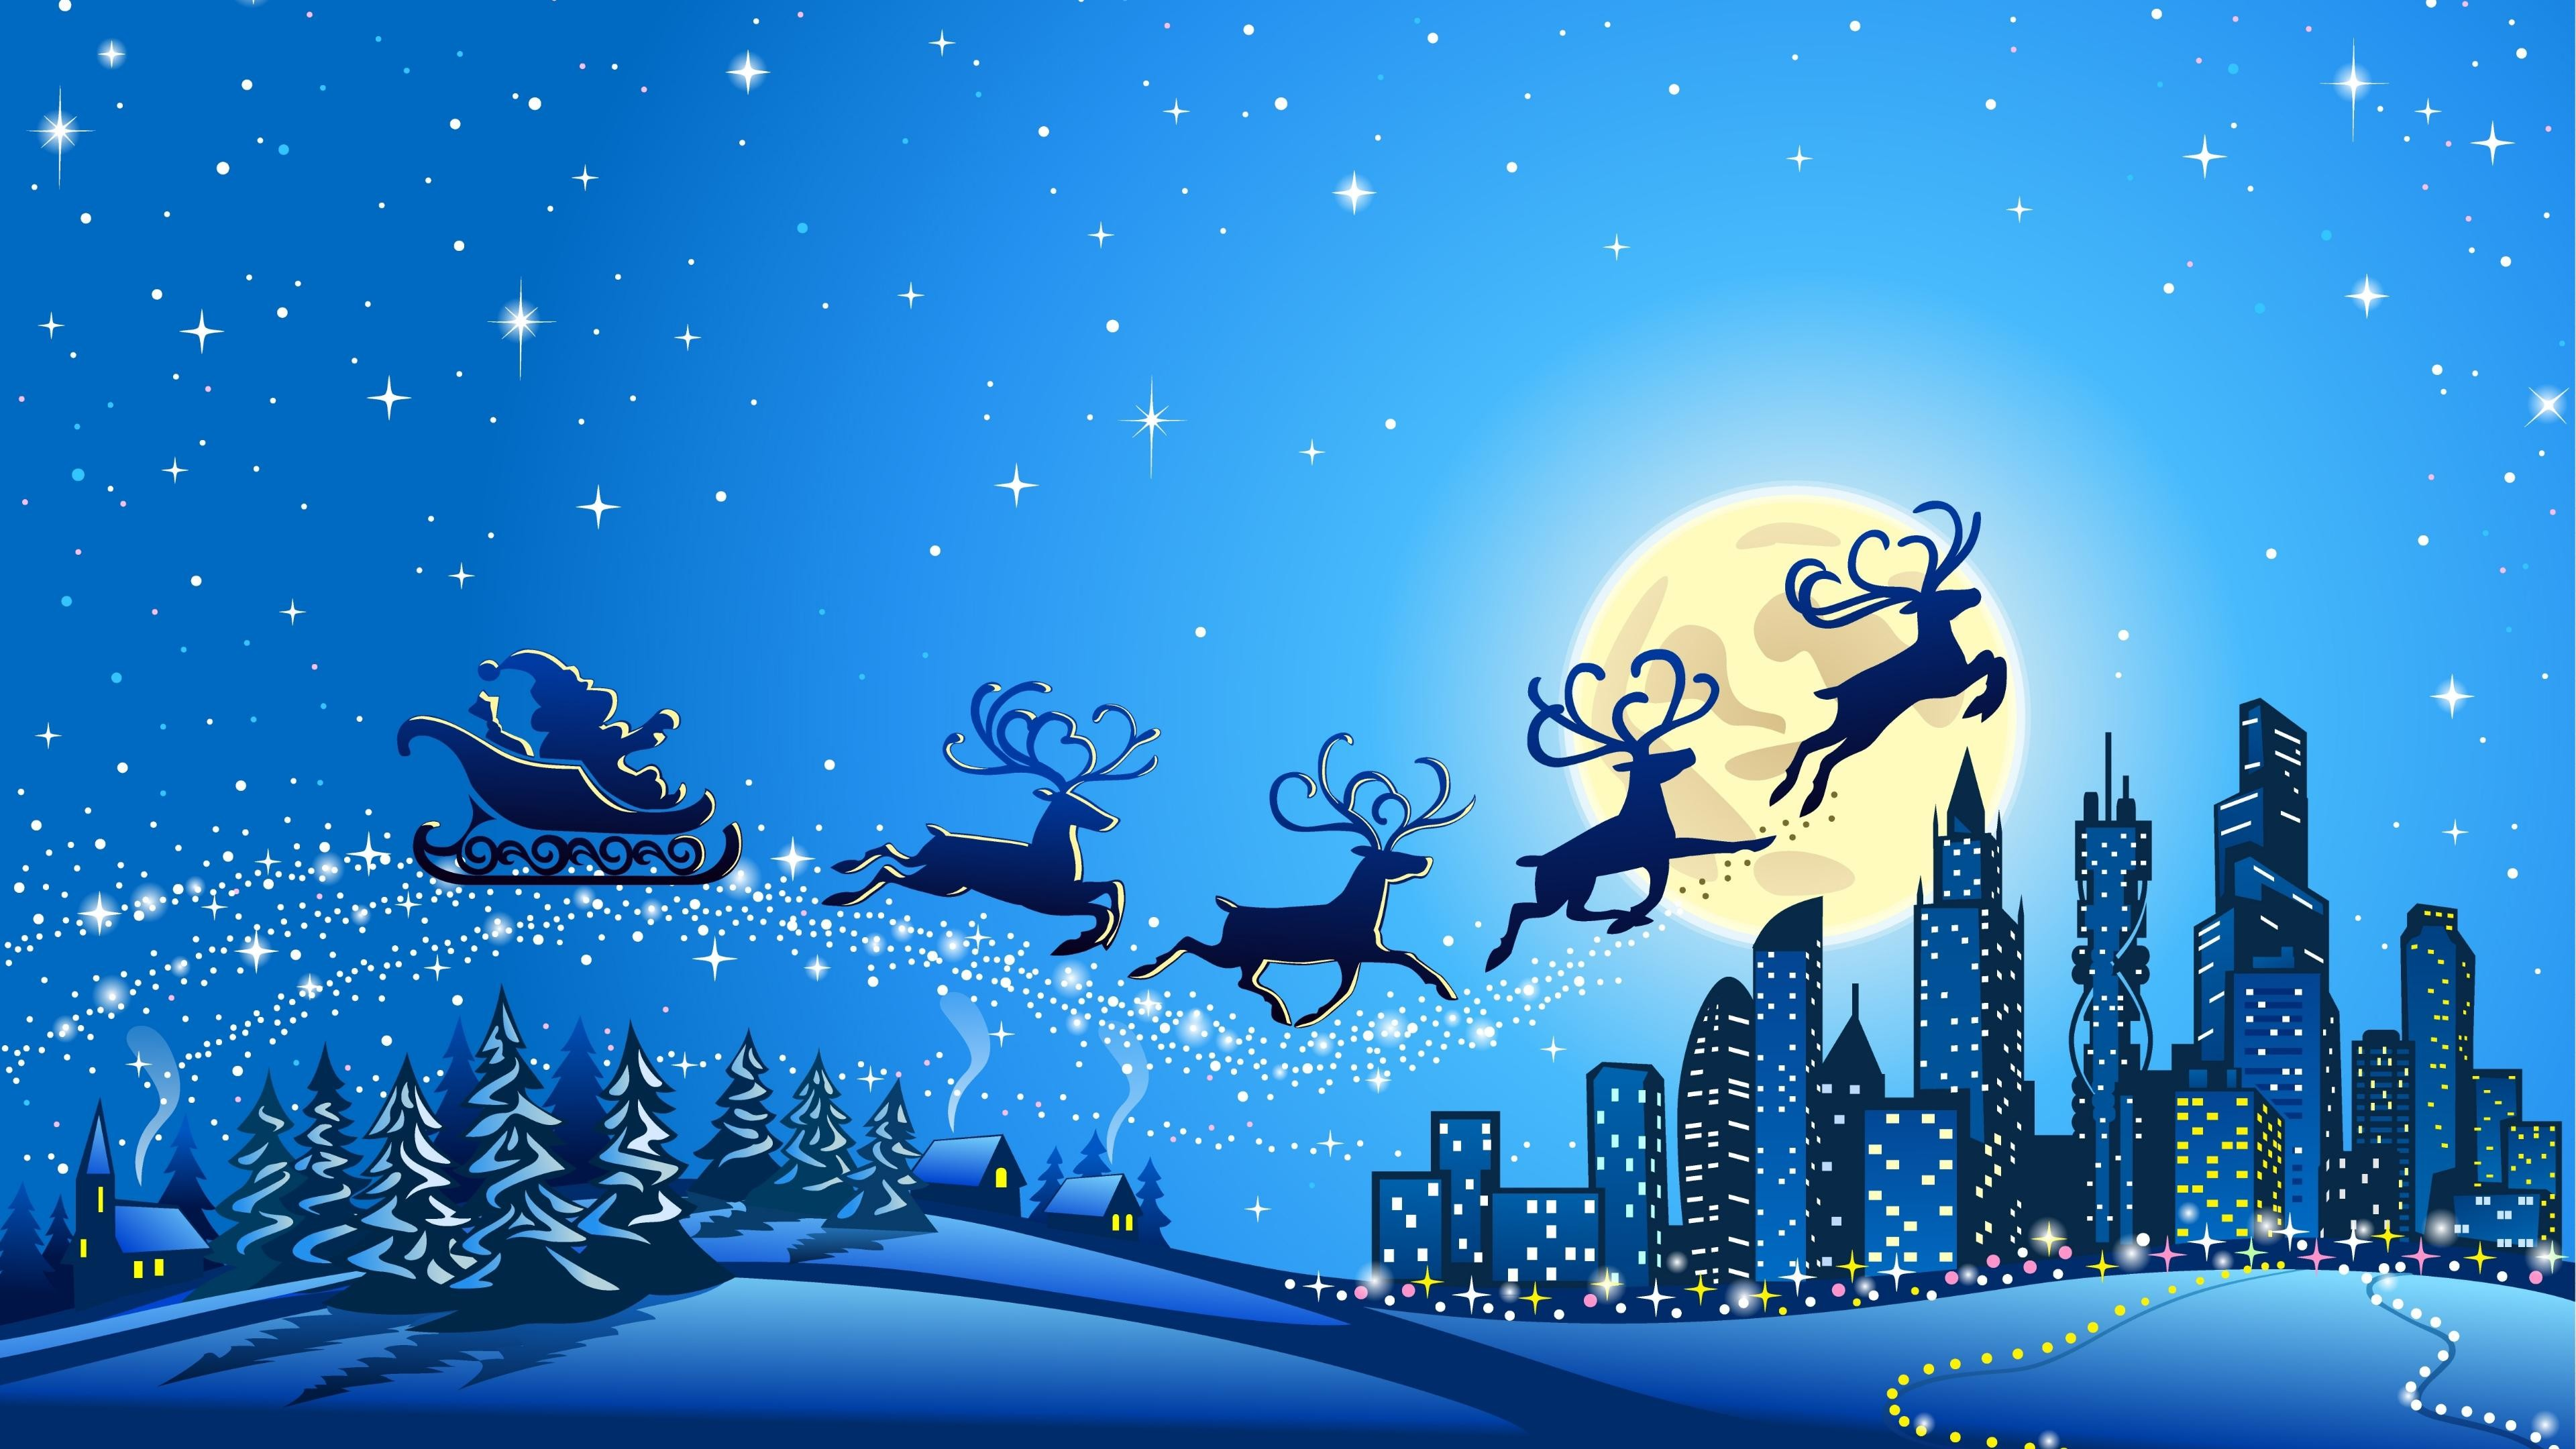 1920x1200 Merry Christmas Wallpaper Hd 1080p Desktop 2801